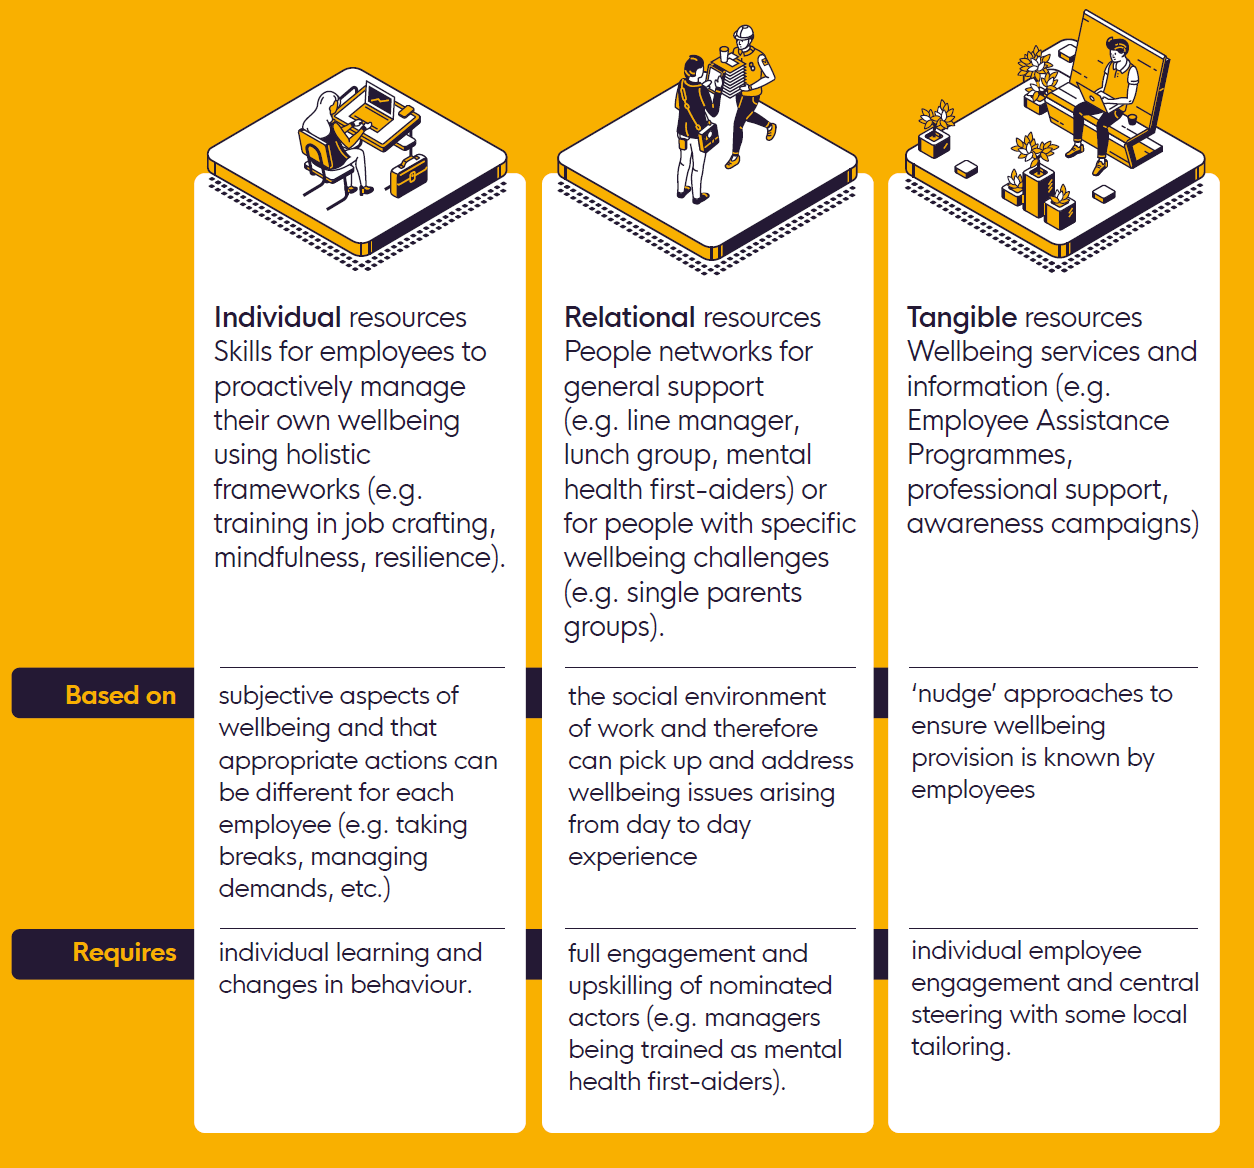 Table showing individual, relational, and tangible organisations